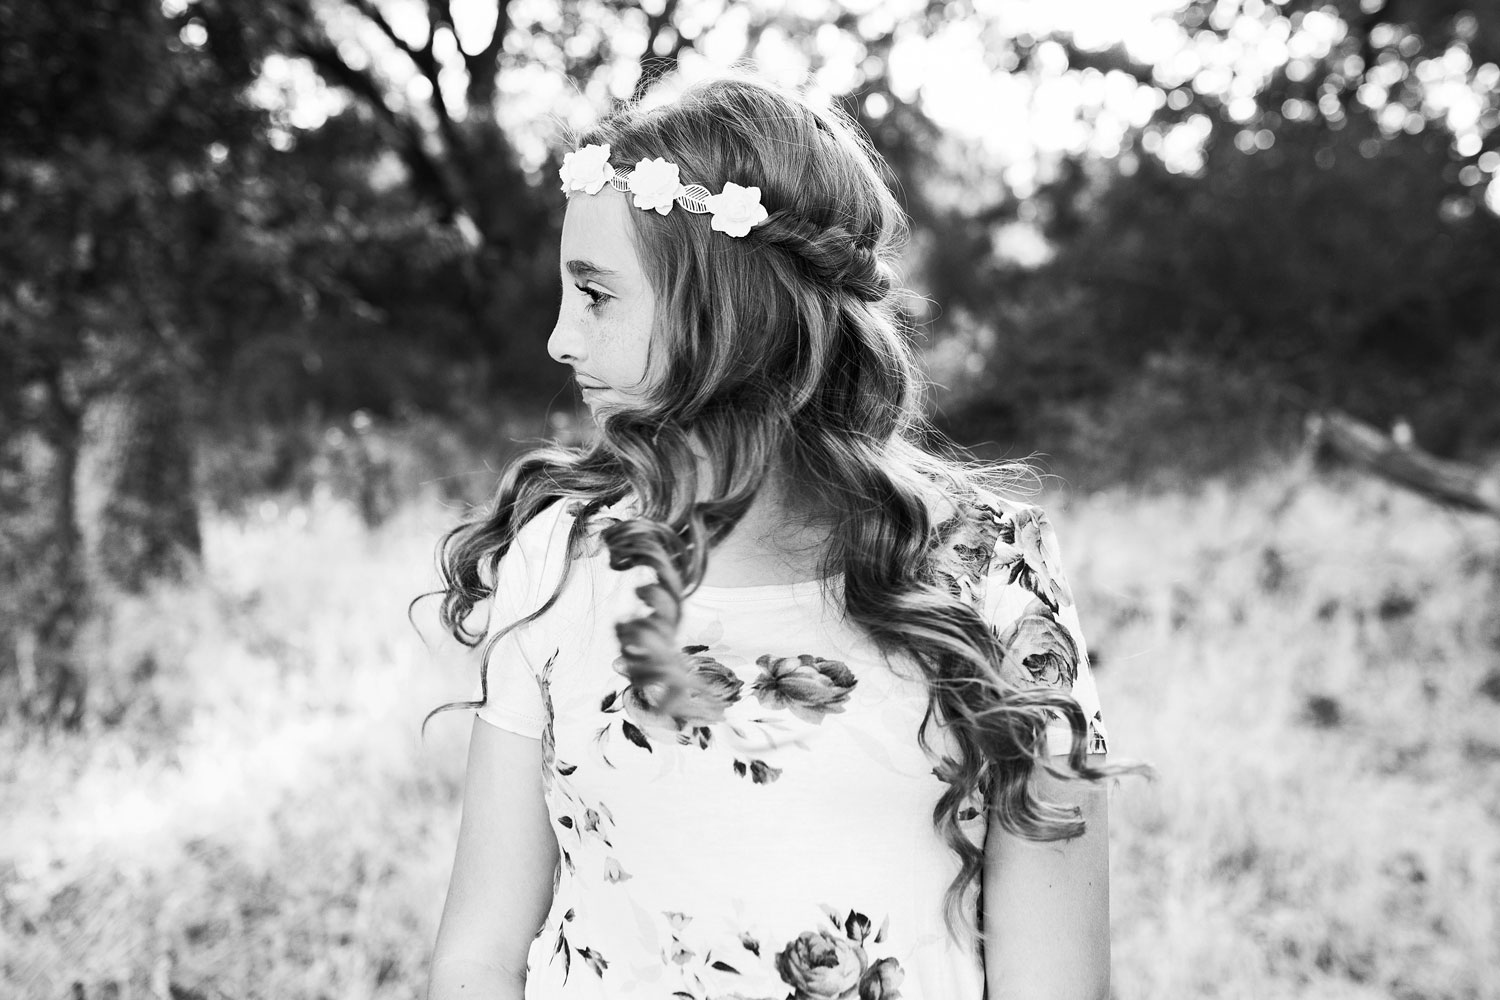 Girl with Curly Hair, Family of Six, Roseville Family Photographer, Amy Wright Photography